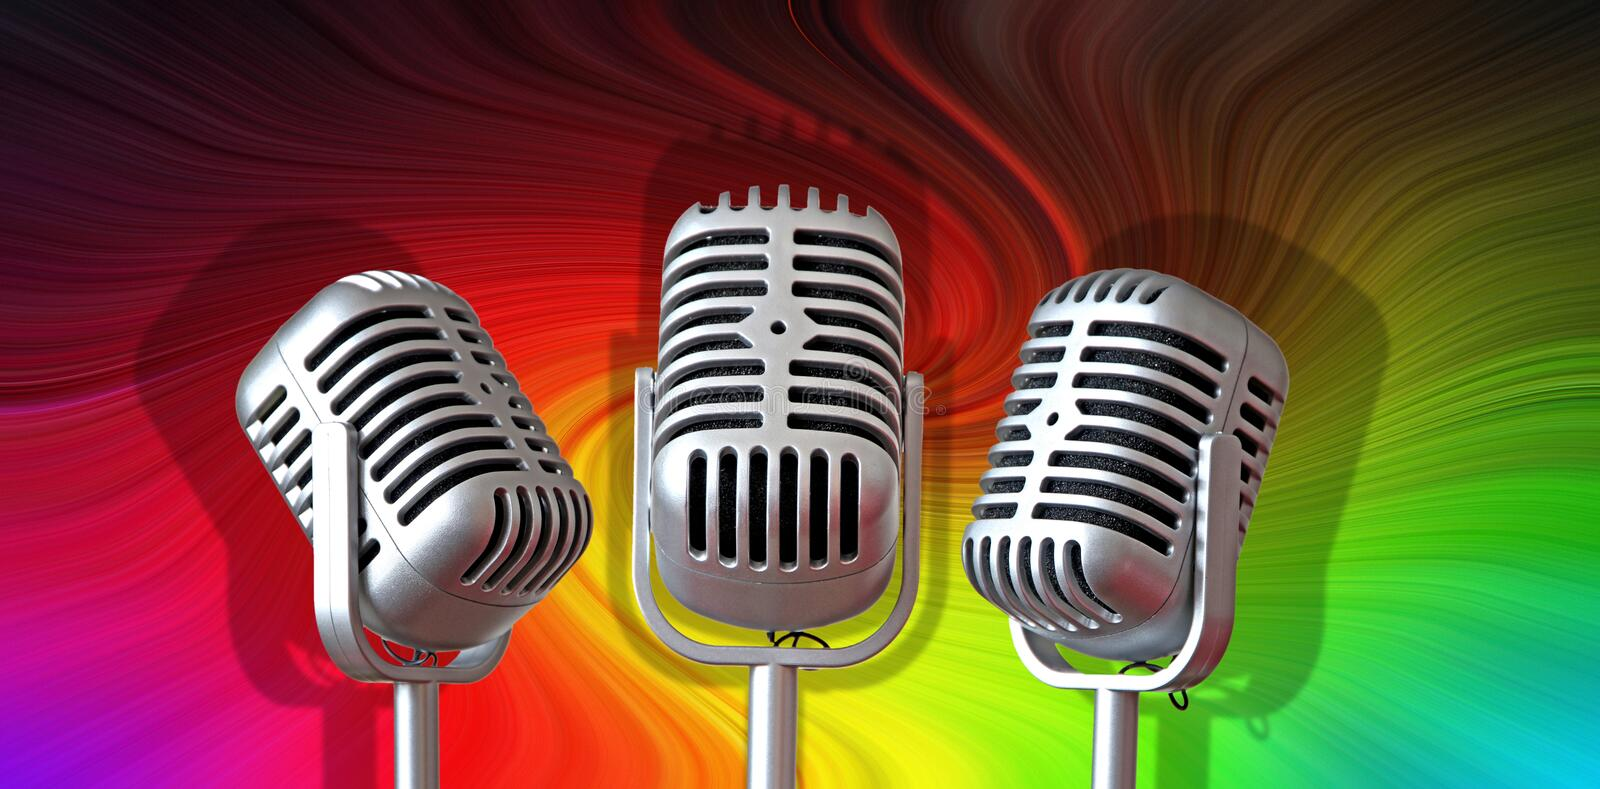 Old vintage mics microphones recording sound music singing studio stage. Photo of vintage trio microphones set against a colourful swirling background ideal for royalty free stock photography